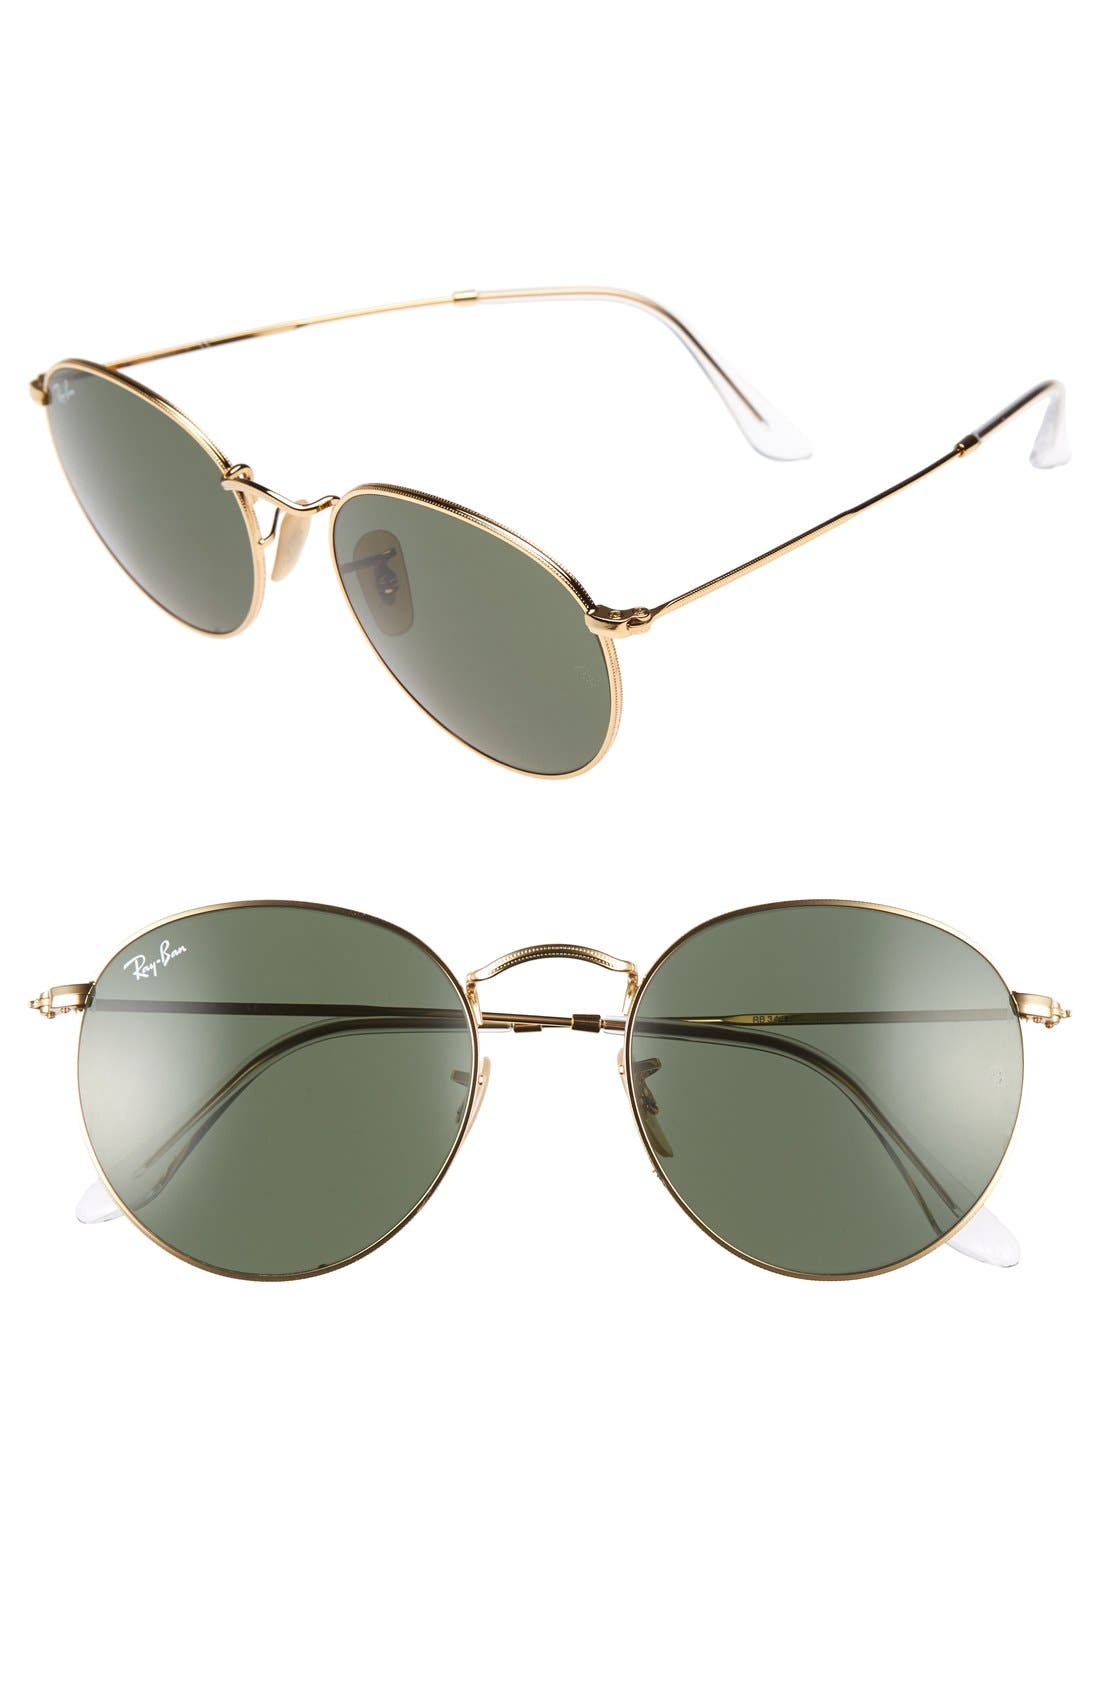 Icons 53mm Retro Sunglasses,                         Main,                         color, Gold/ Green